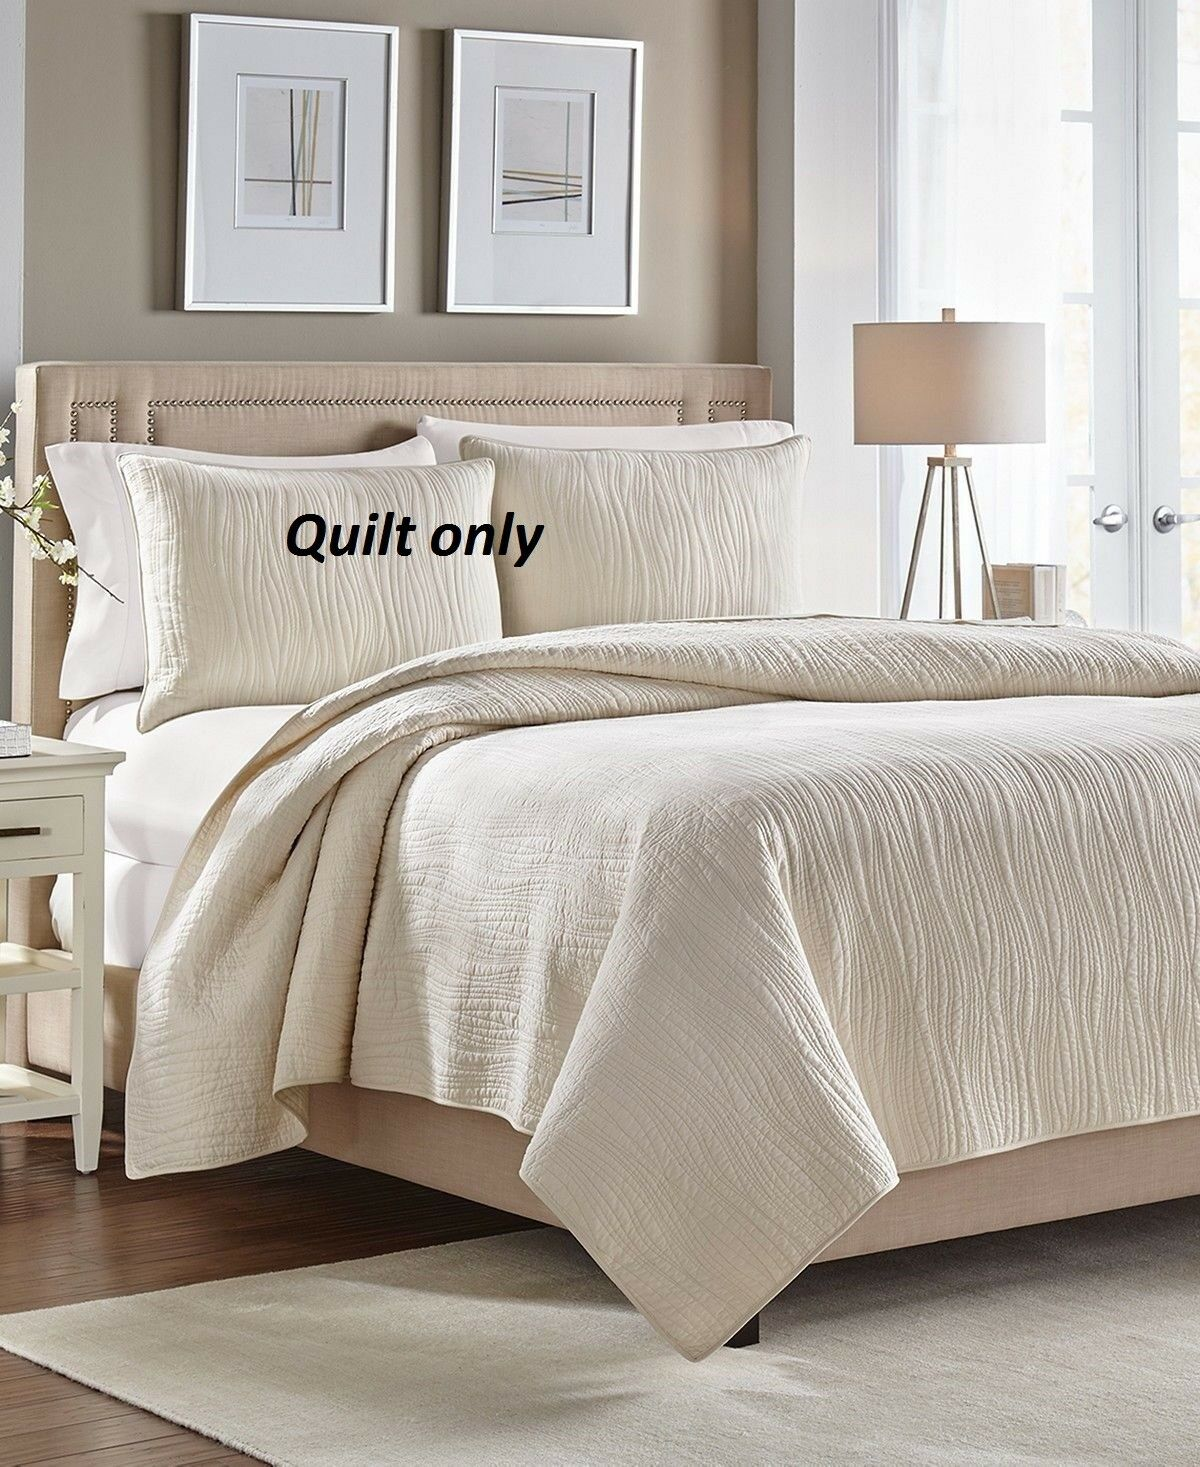 Croscill Ivory Heatherly Quilt  FULL   QUEEN